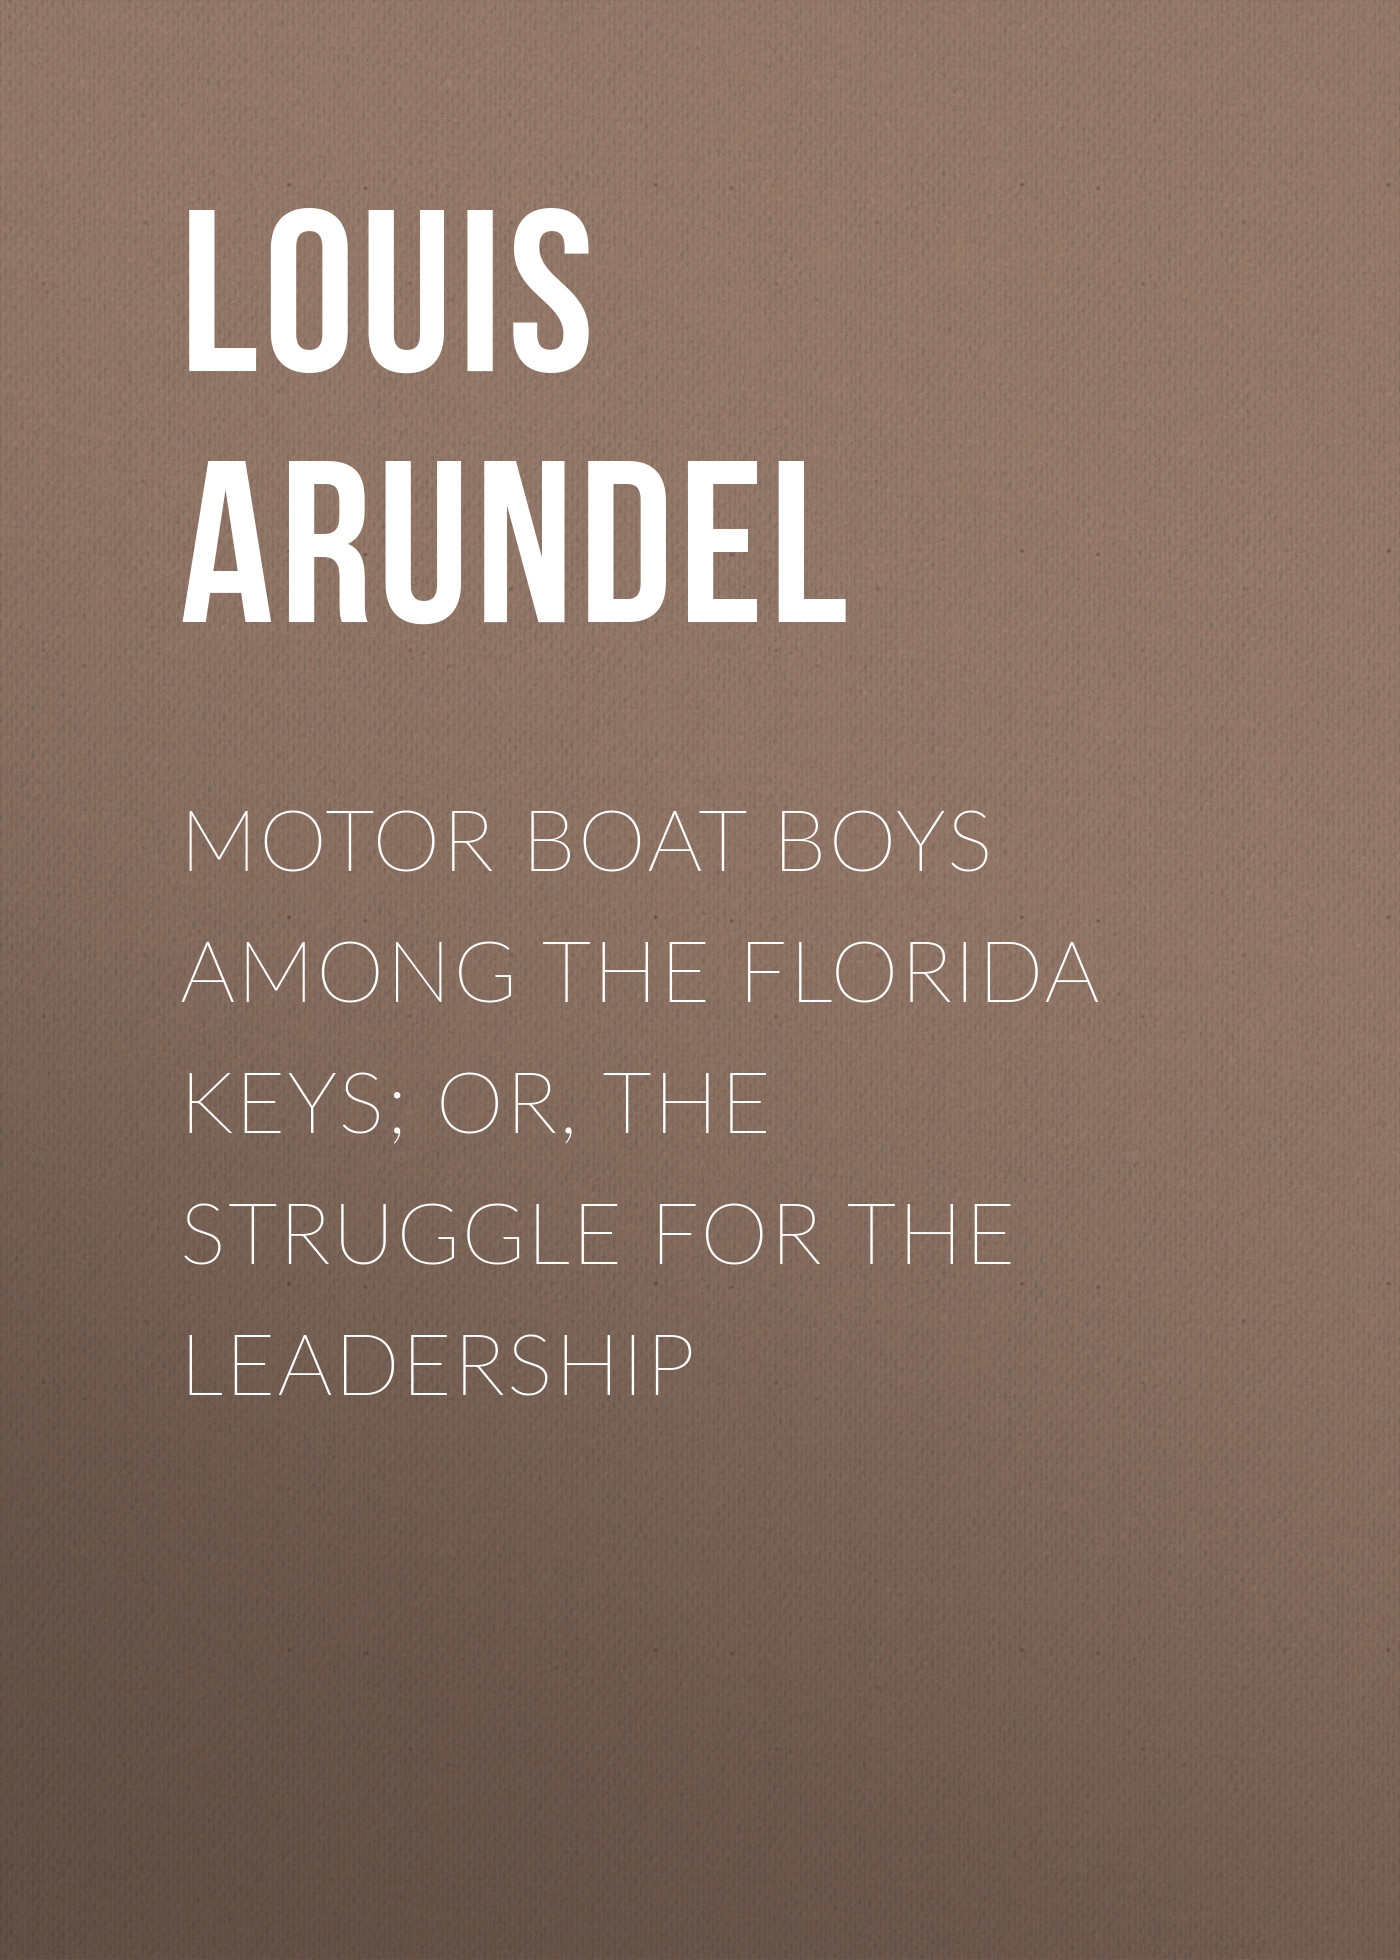 Arundel Louis Motor Boat Boys Among the Florida Keys; Or, The Struggle for the Leadership